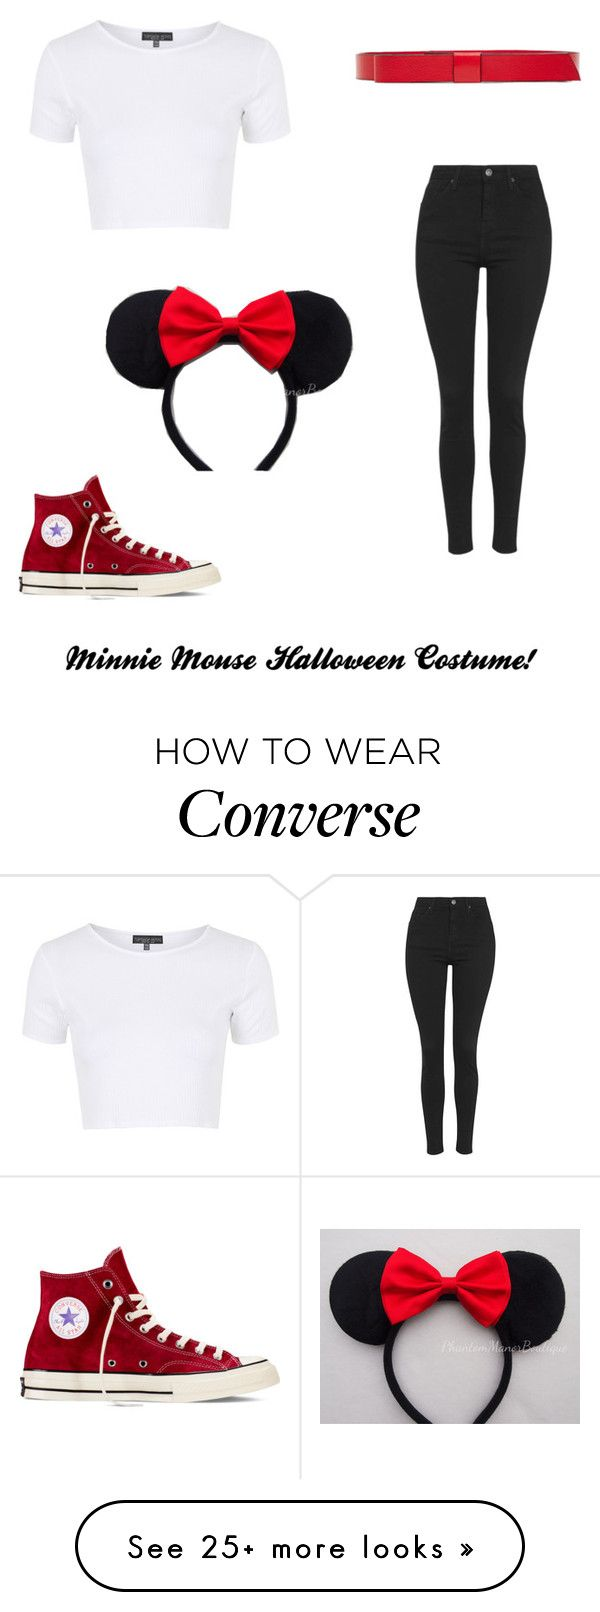 """""""Minnie Mouse Halloween Costume!"""" by jewelqueen on Polyvore featuring Topshop, Marni, Disney and Converse"""